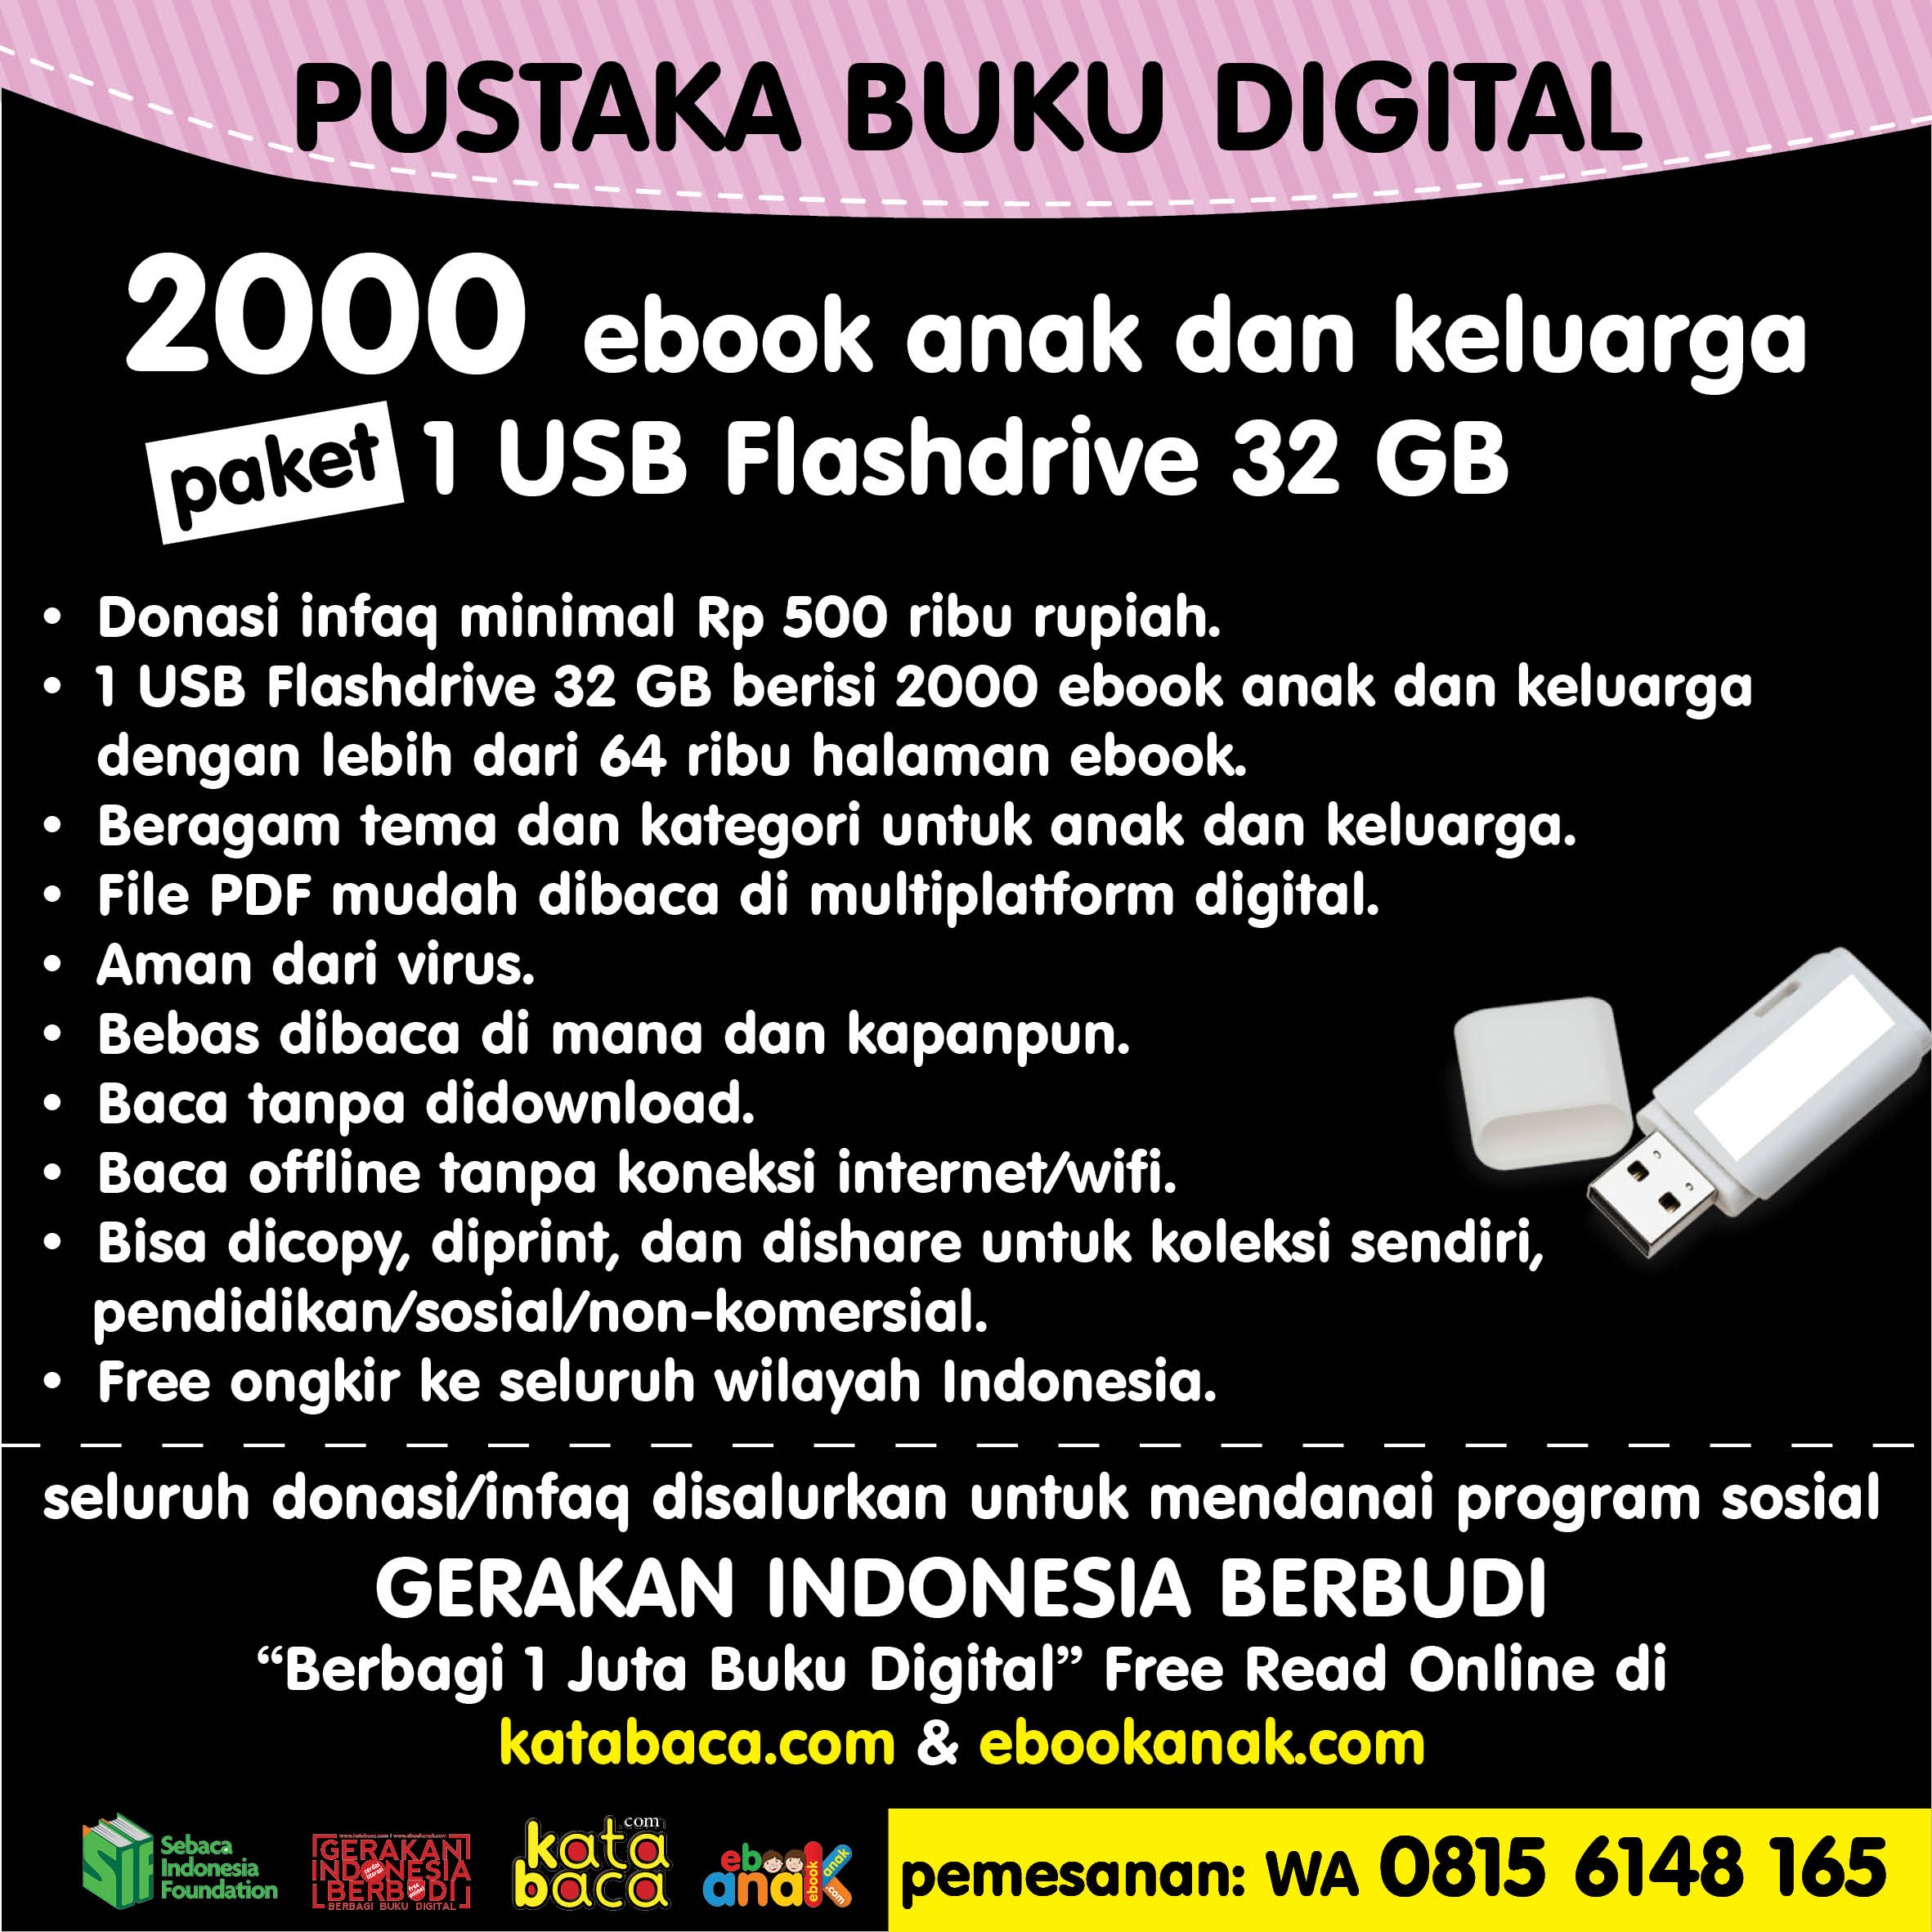 2000 ebook pustaka mni digital